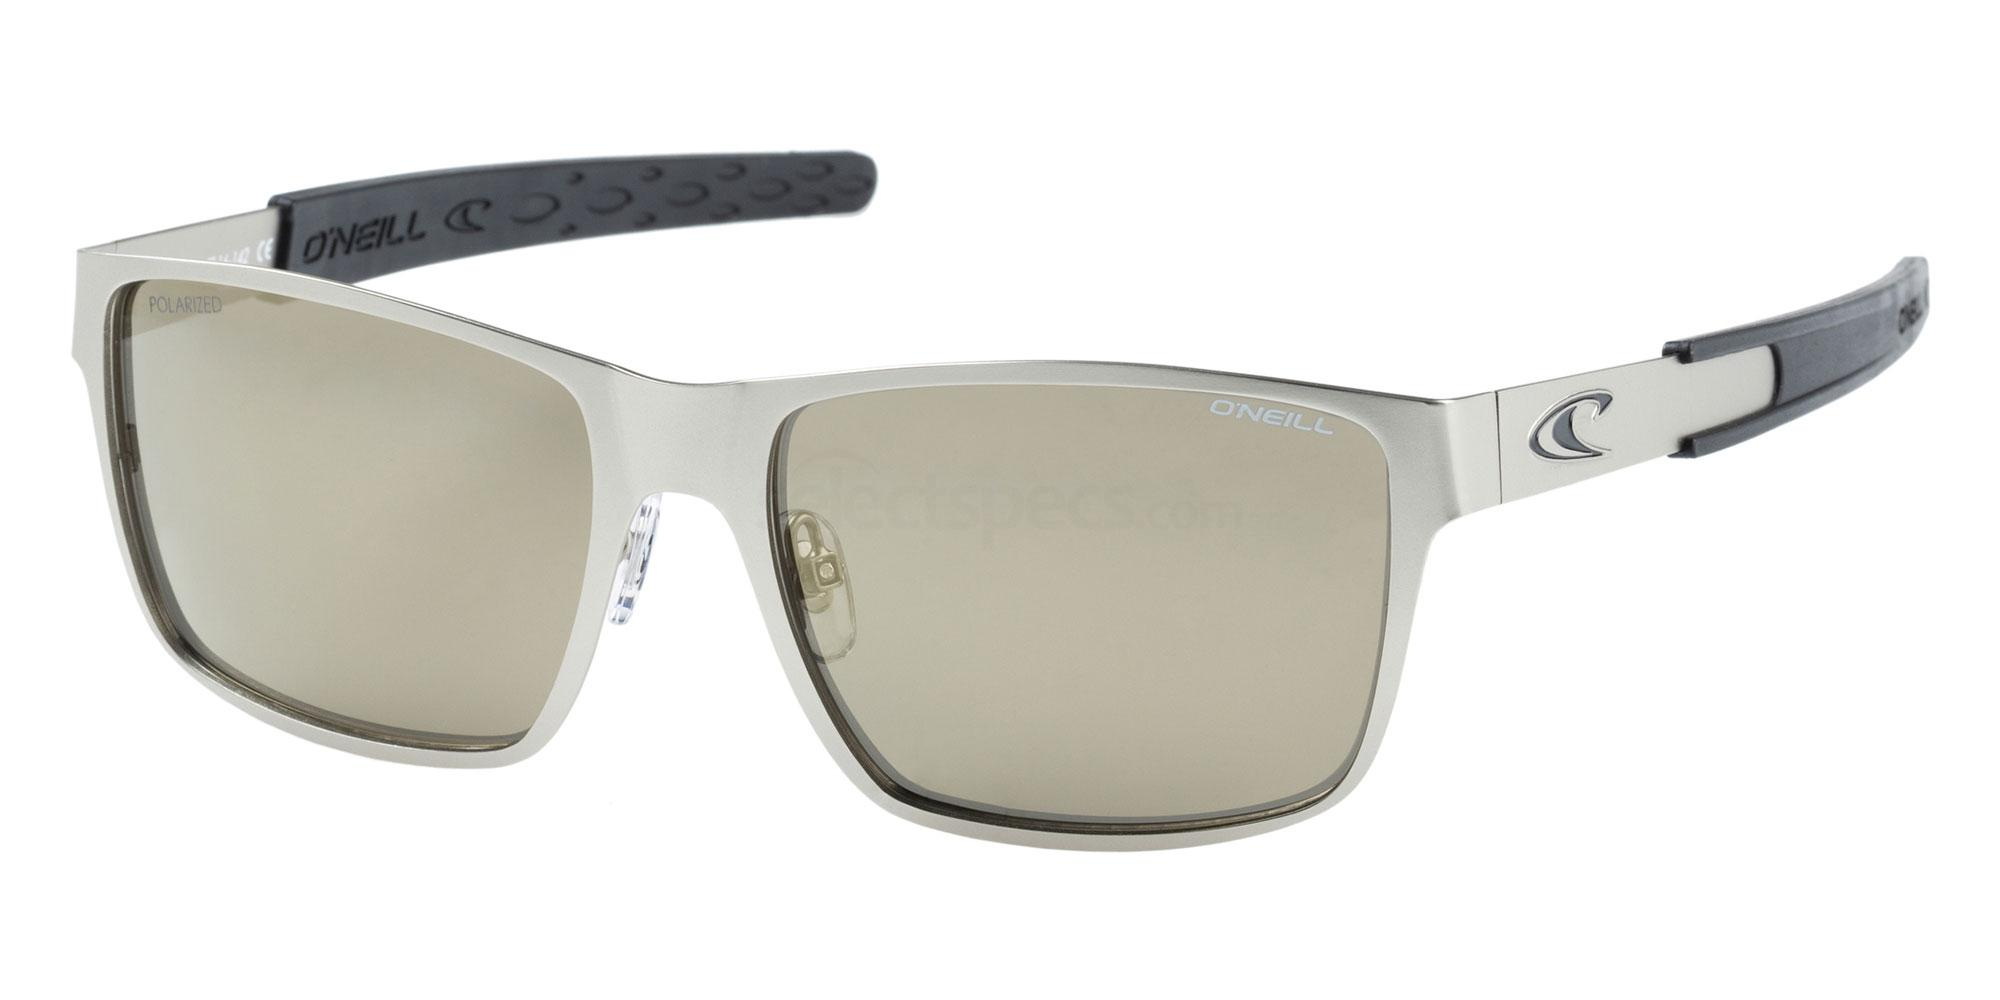 002P ONS-CLIPPER Sunglasses, O'Neill